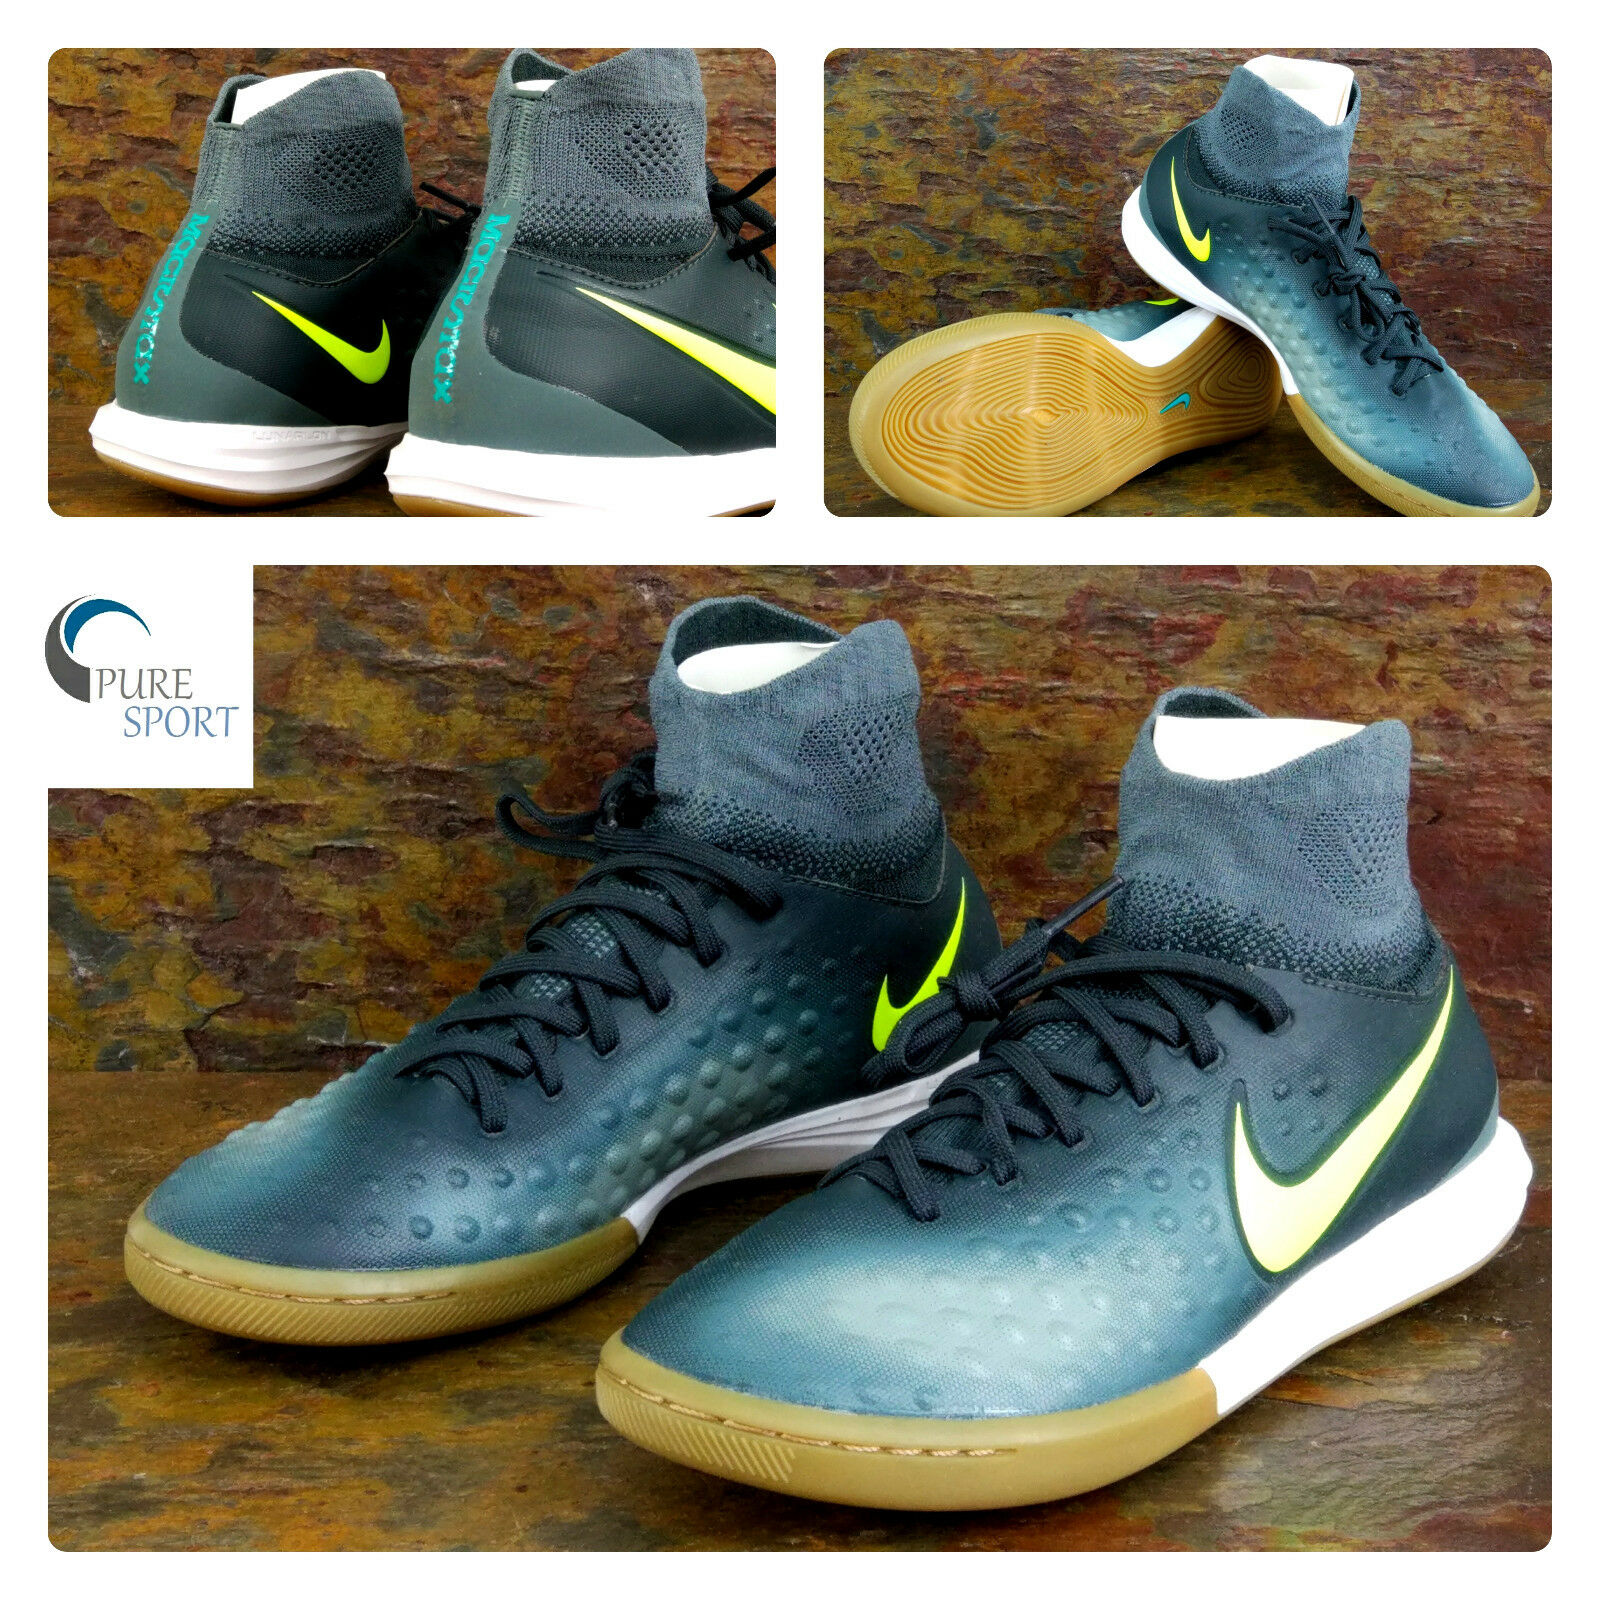 aec434e49 NIKE Junior MAGISTAX Proximo II Dynamic Fit IC Football Trainers Eu 38.  Credit Cards · Vintage Mens ...